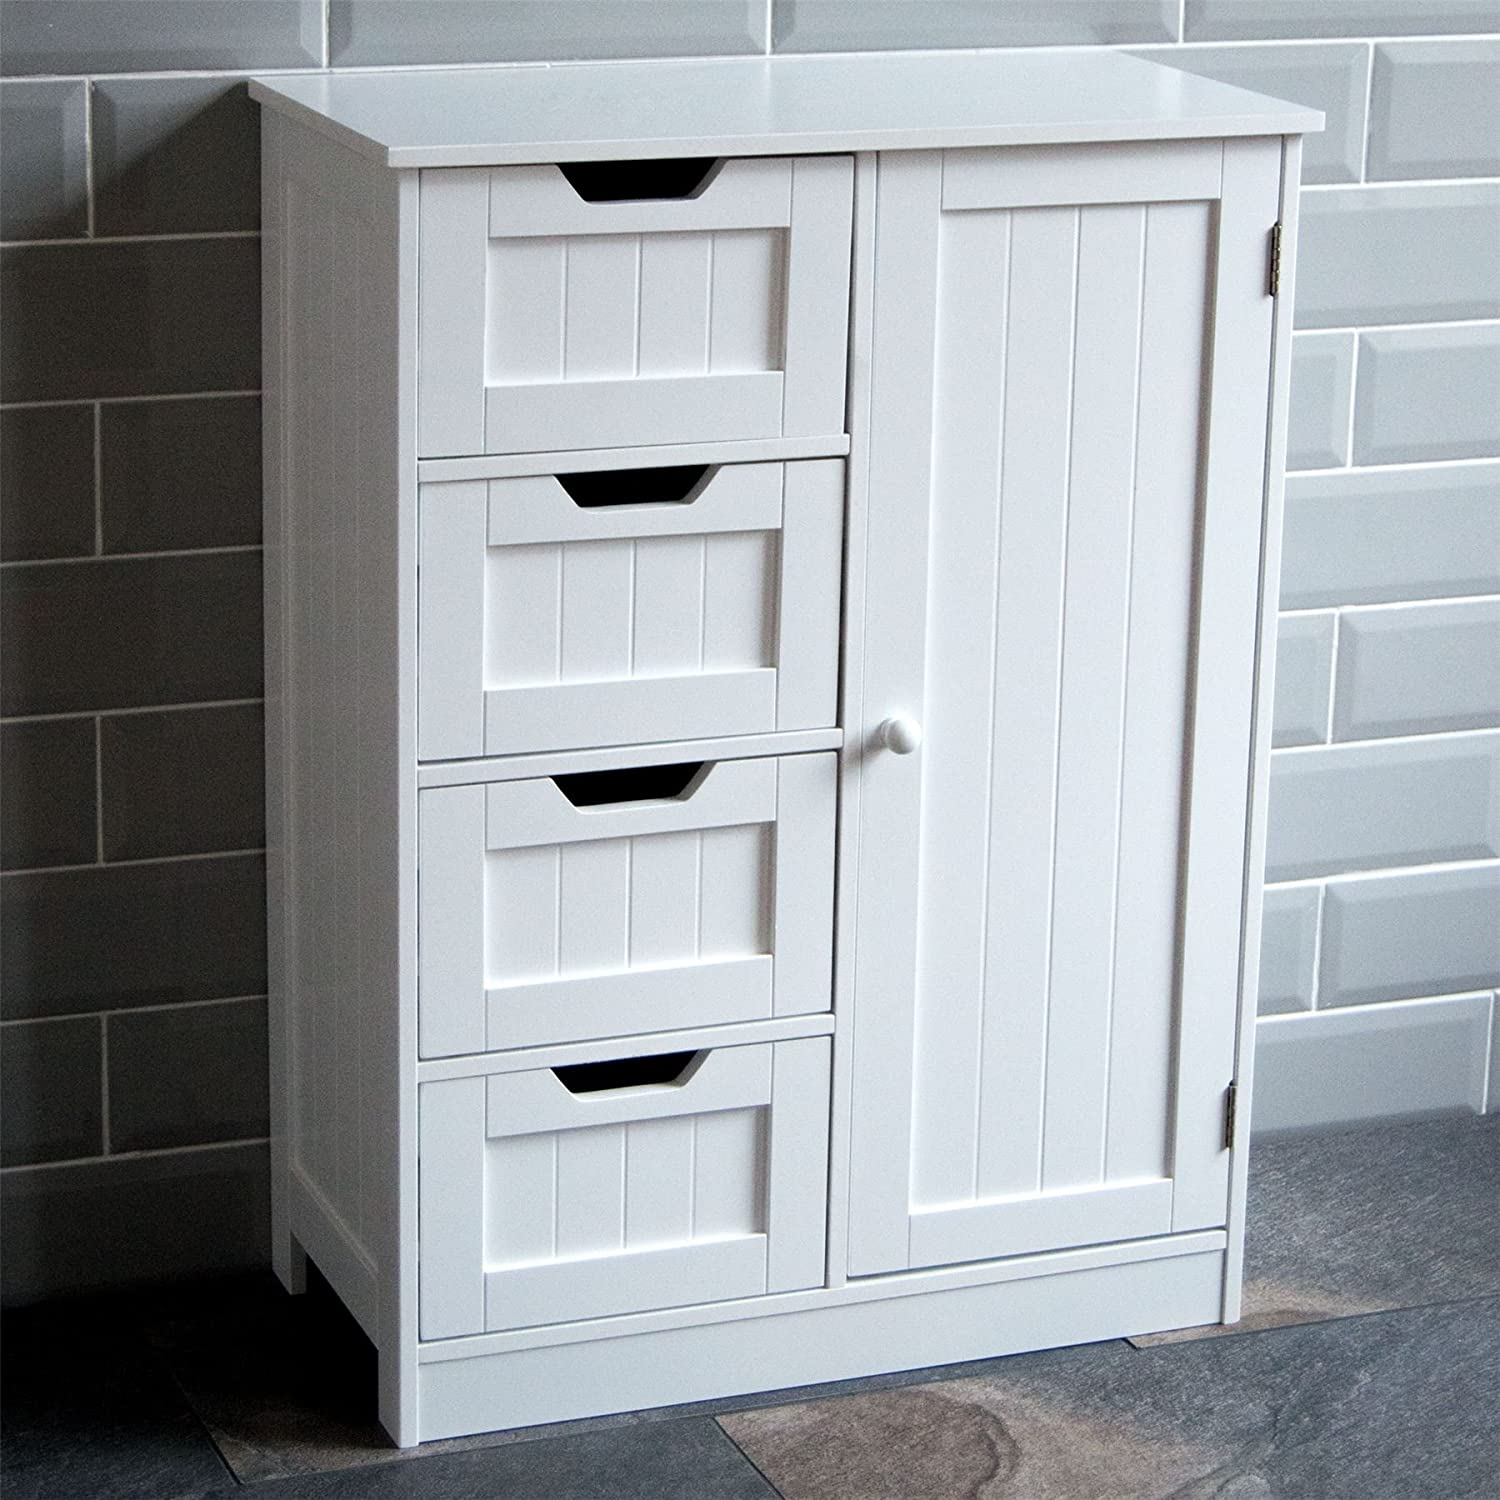 standing drawer unit kitchen cabinets uk bathroom discount dp white door floor home free wood cabinet cupboard amazon storage co